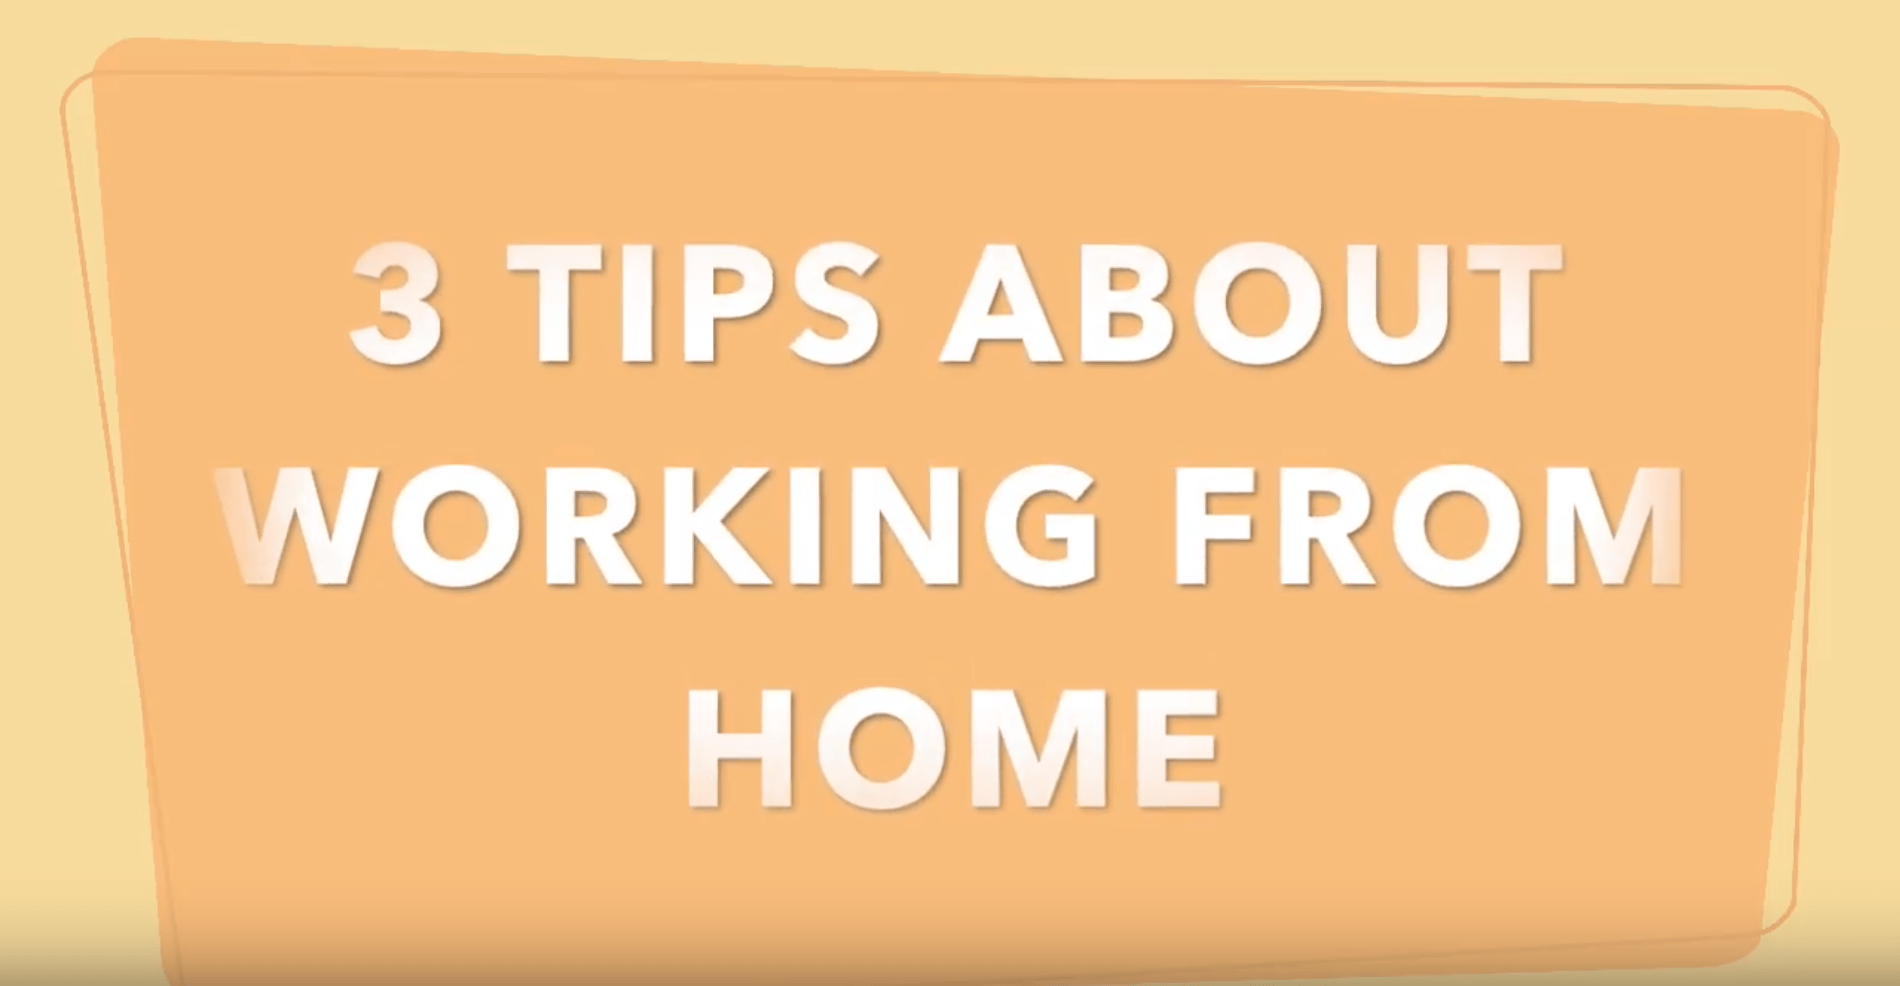 3 tips about working from home